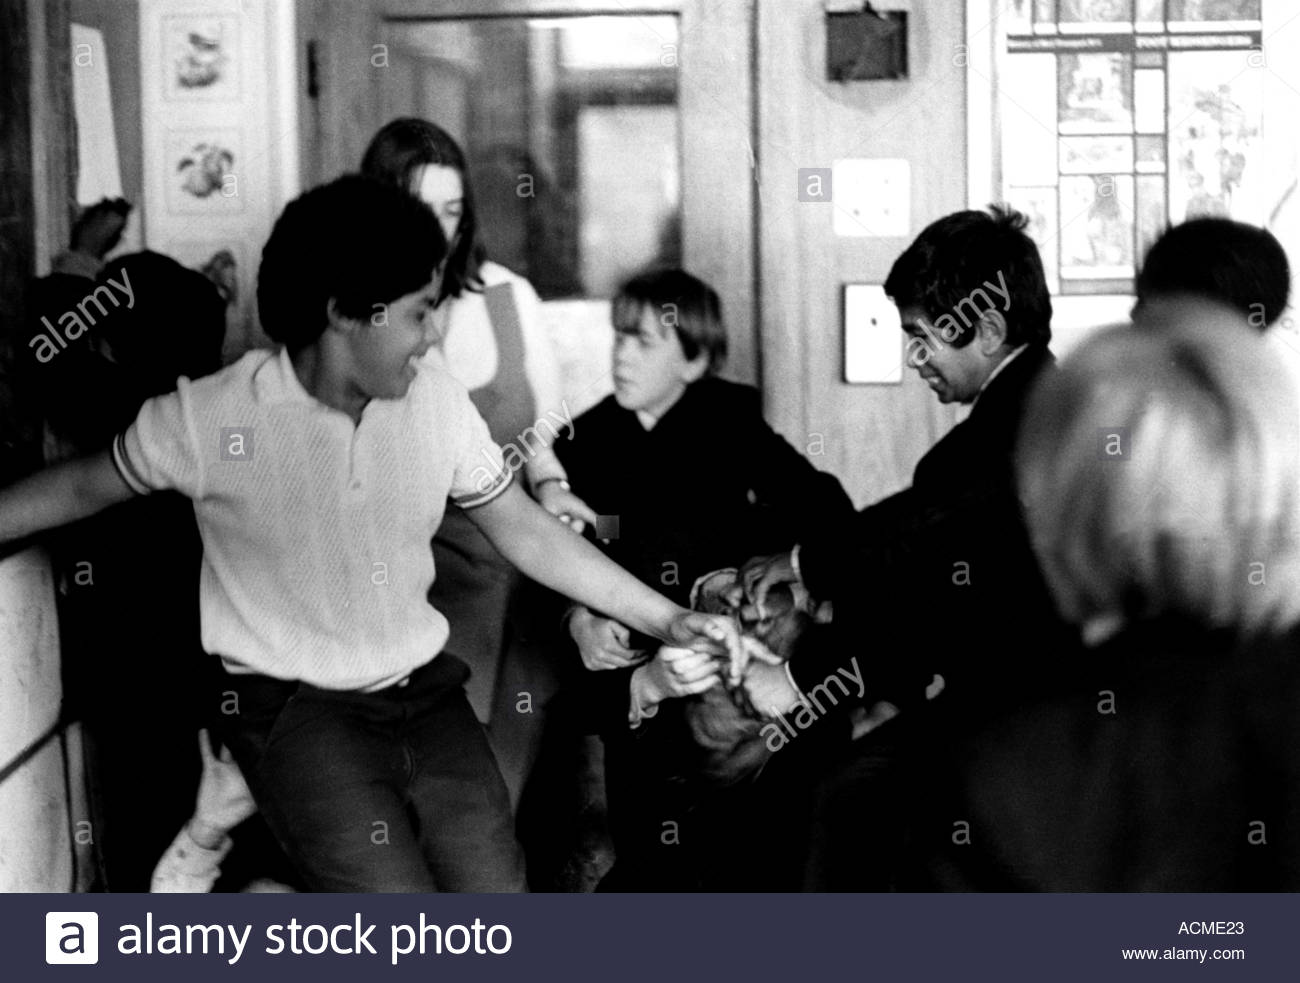 Disruptive class of secondary school children fighting in the classroom - Stock Image